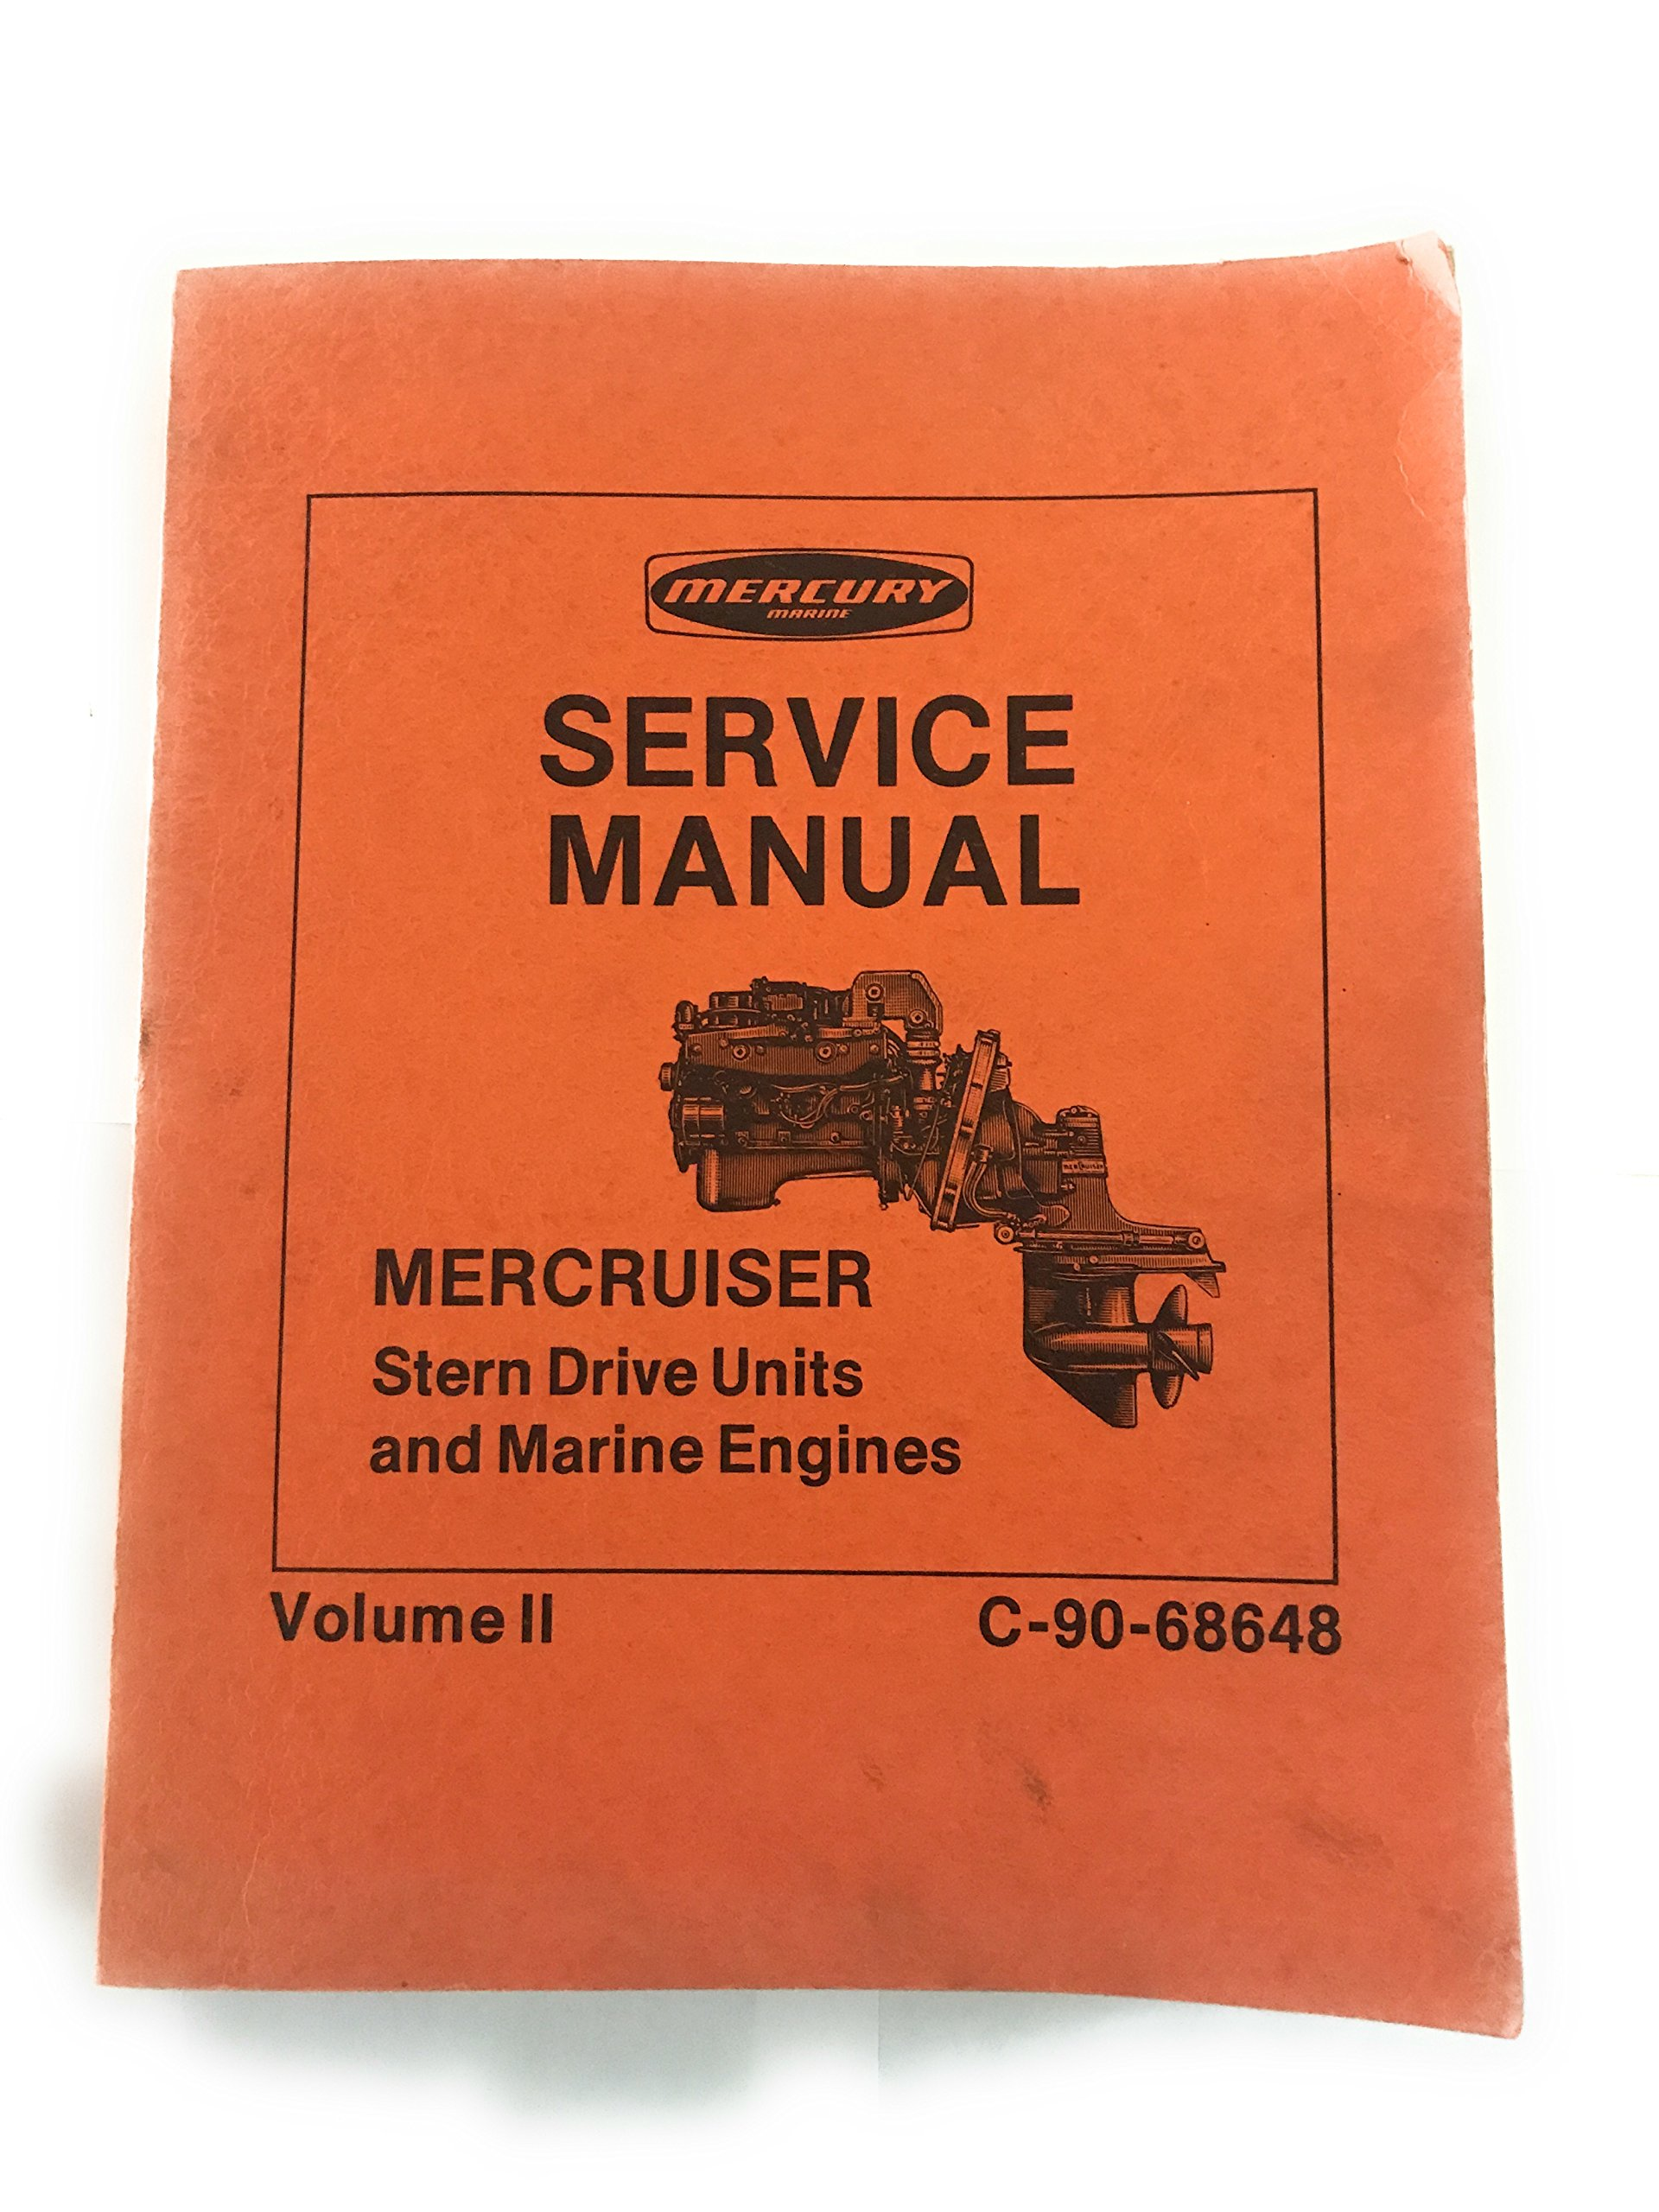 mercury service manual mercruiser stern drive units and marine rh amazon com Mercruiser 165 4 Cyl Engine Mercruiser 485